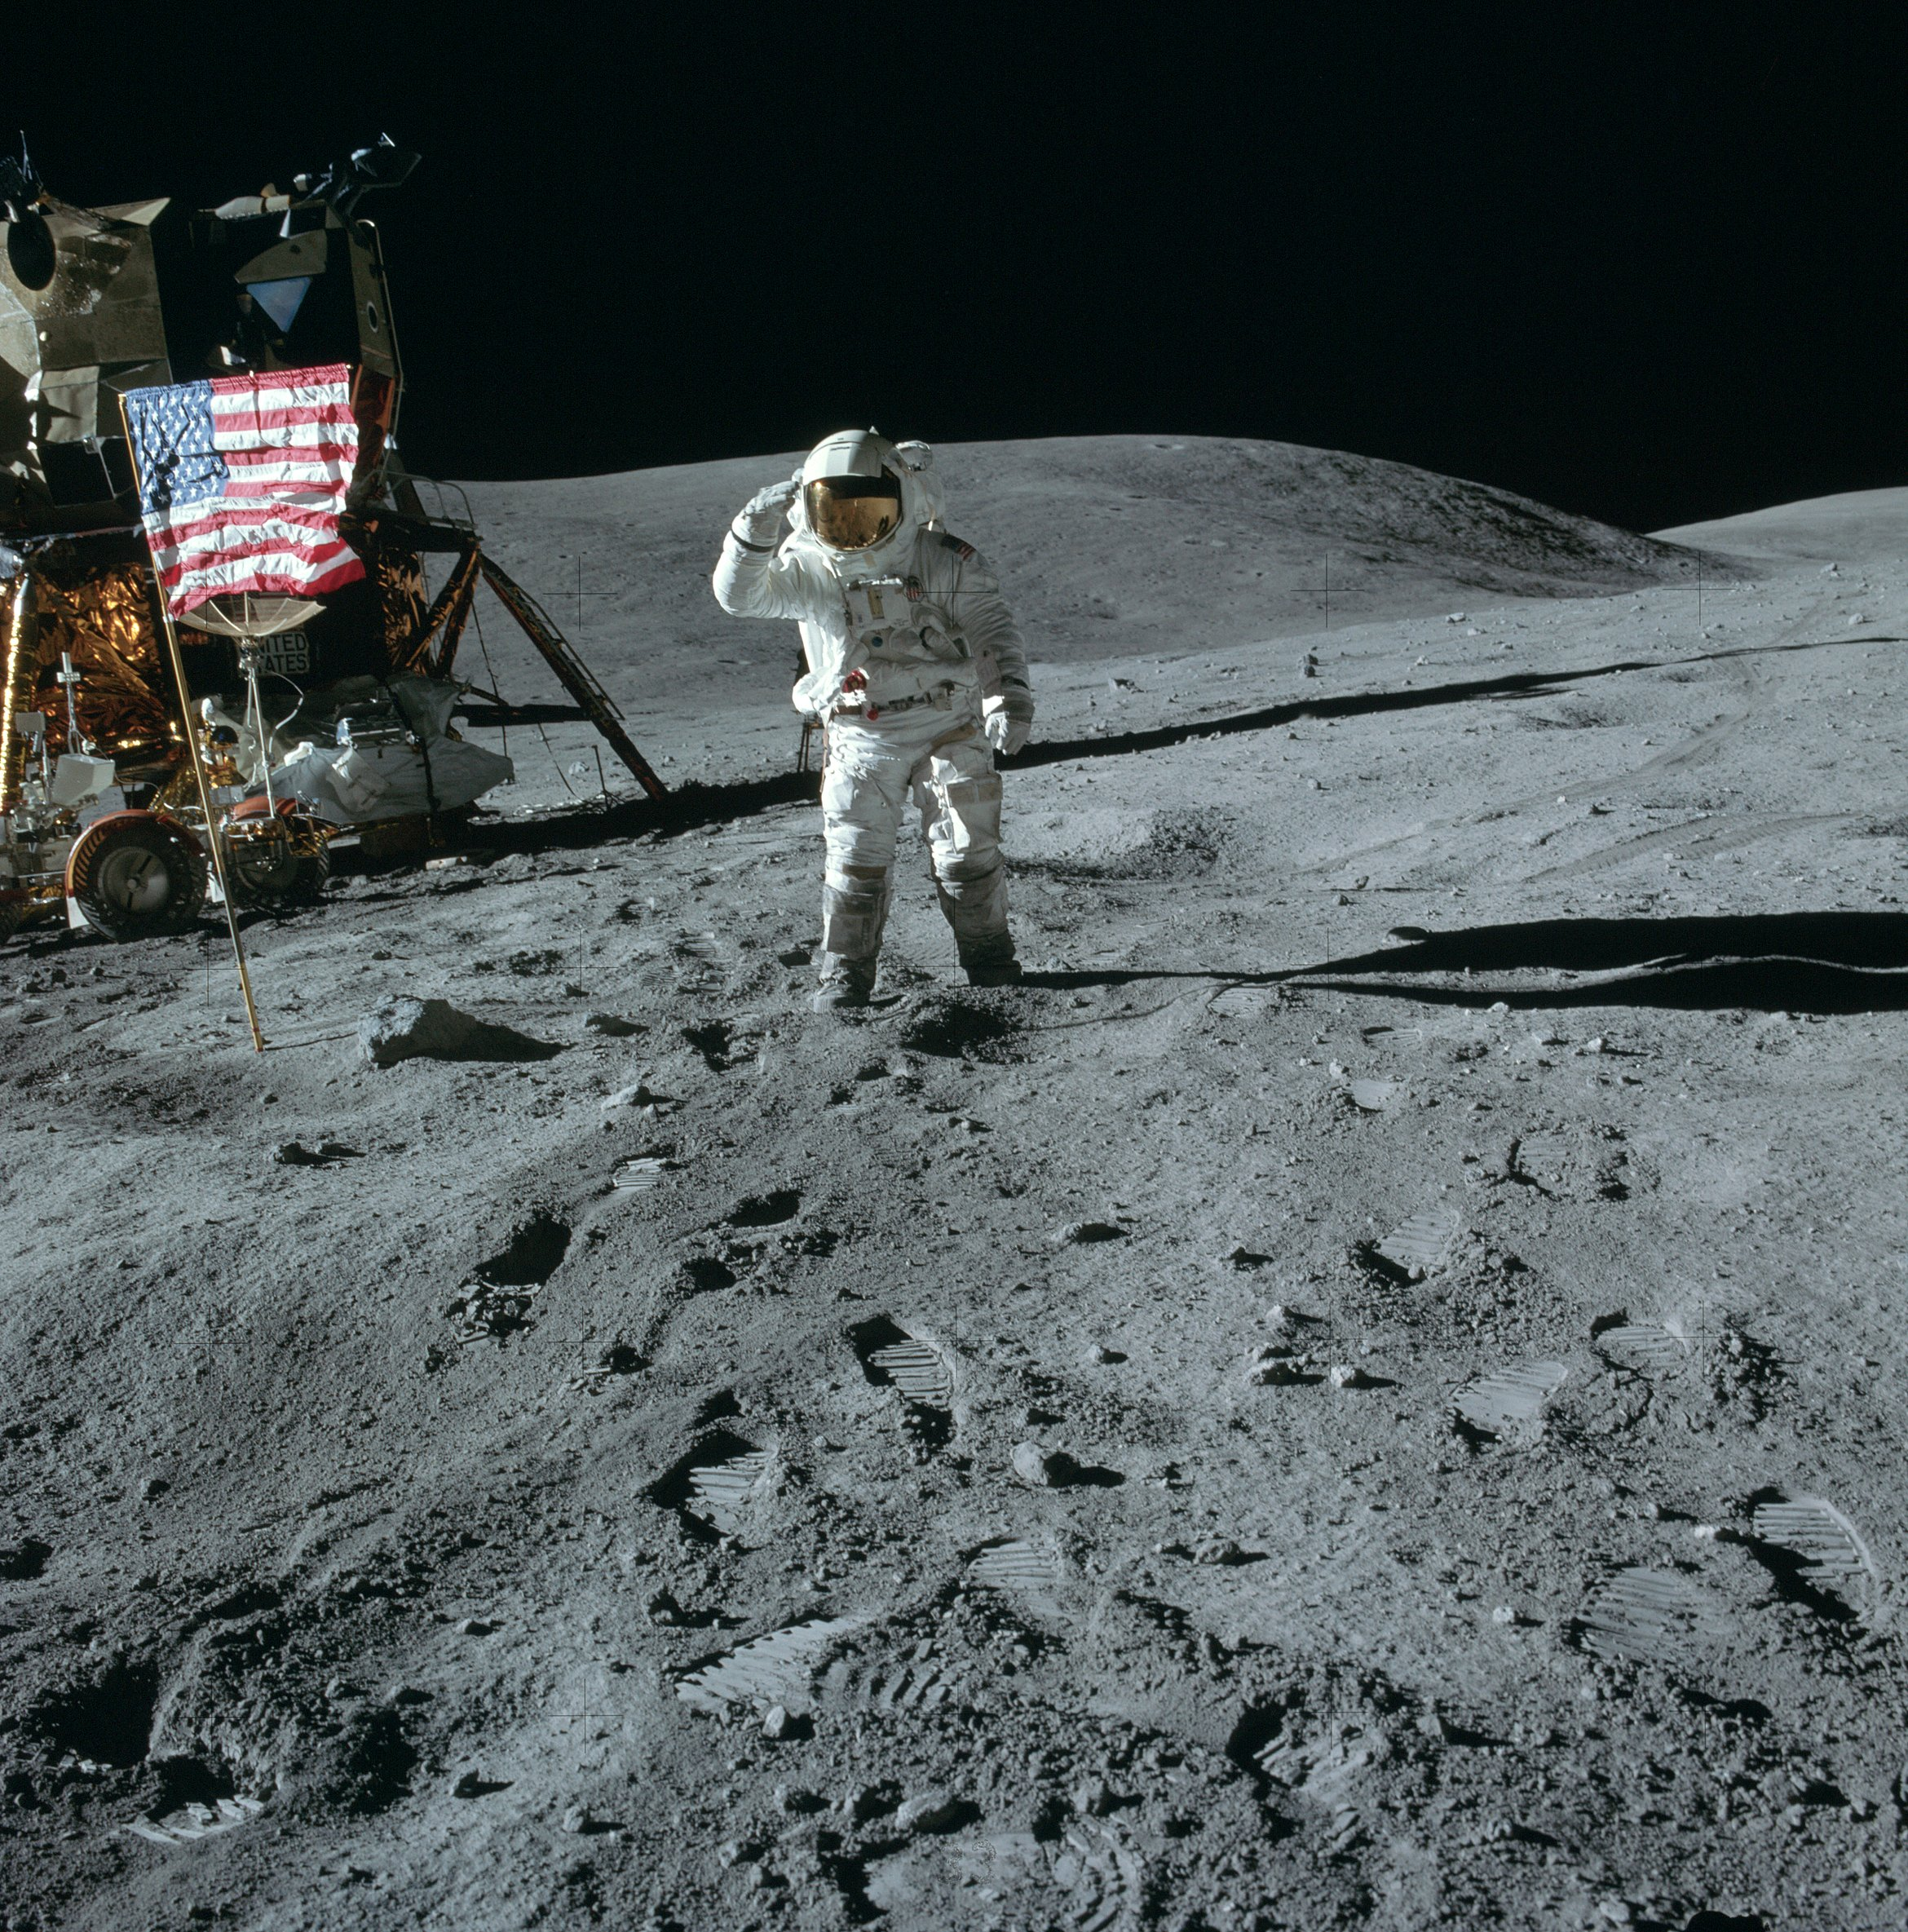 Details revealed in high-resolution Apollo photos ...